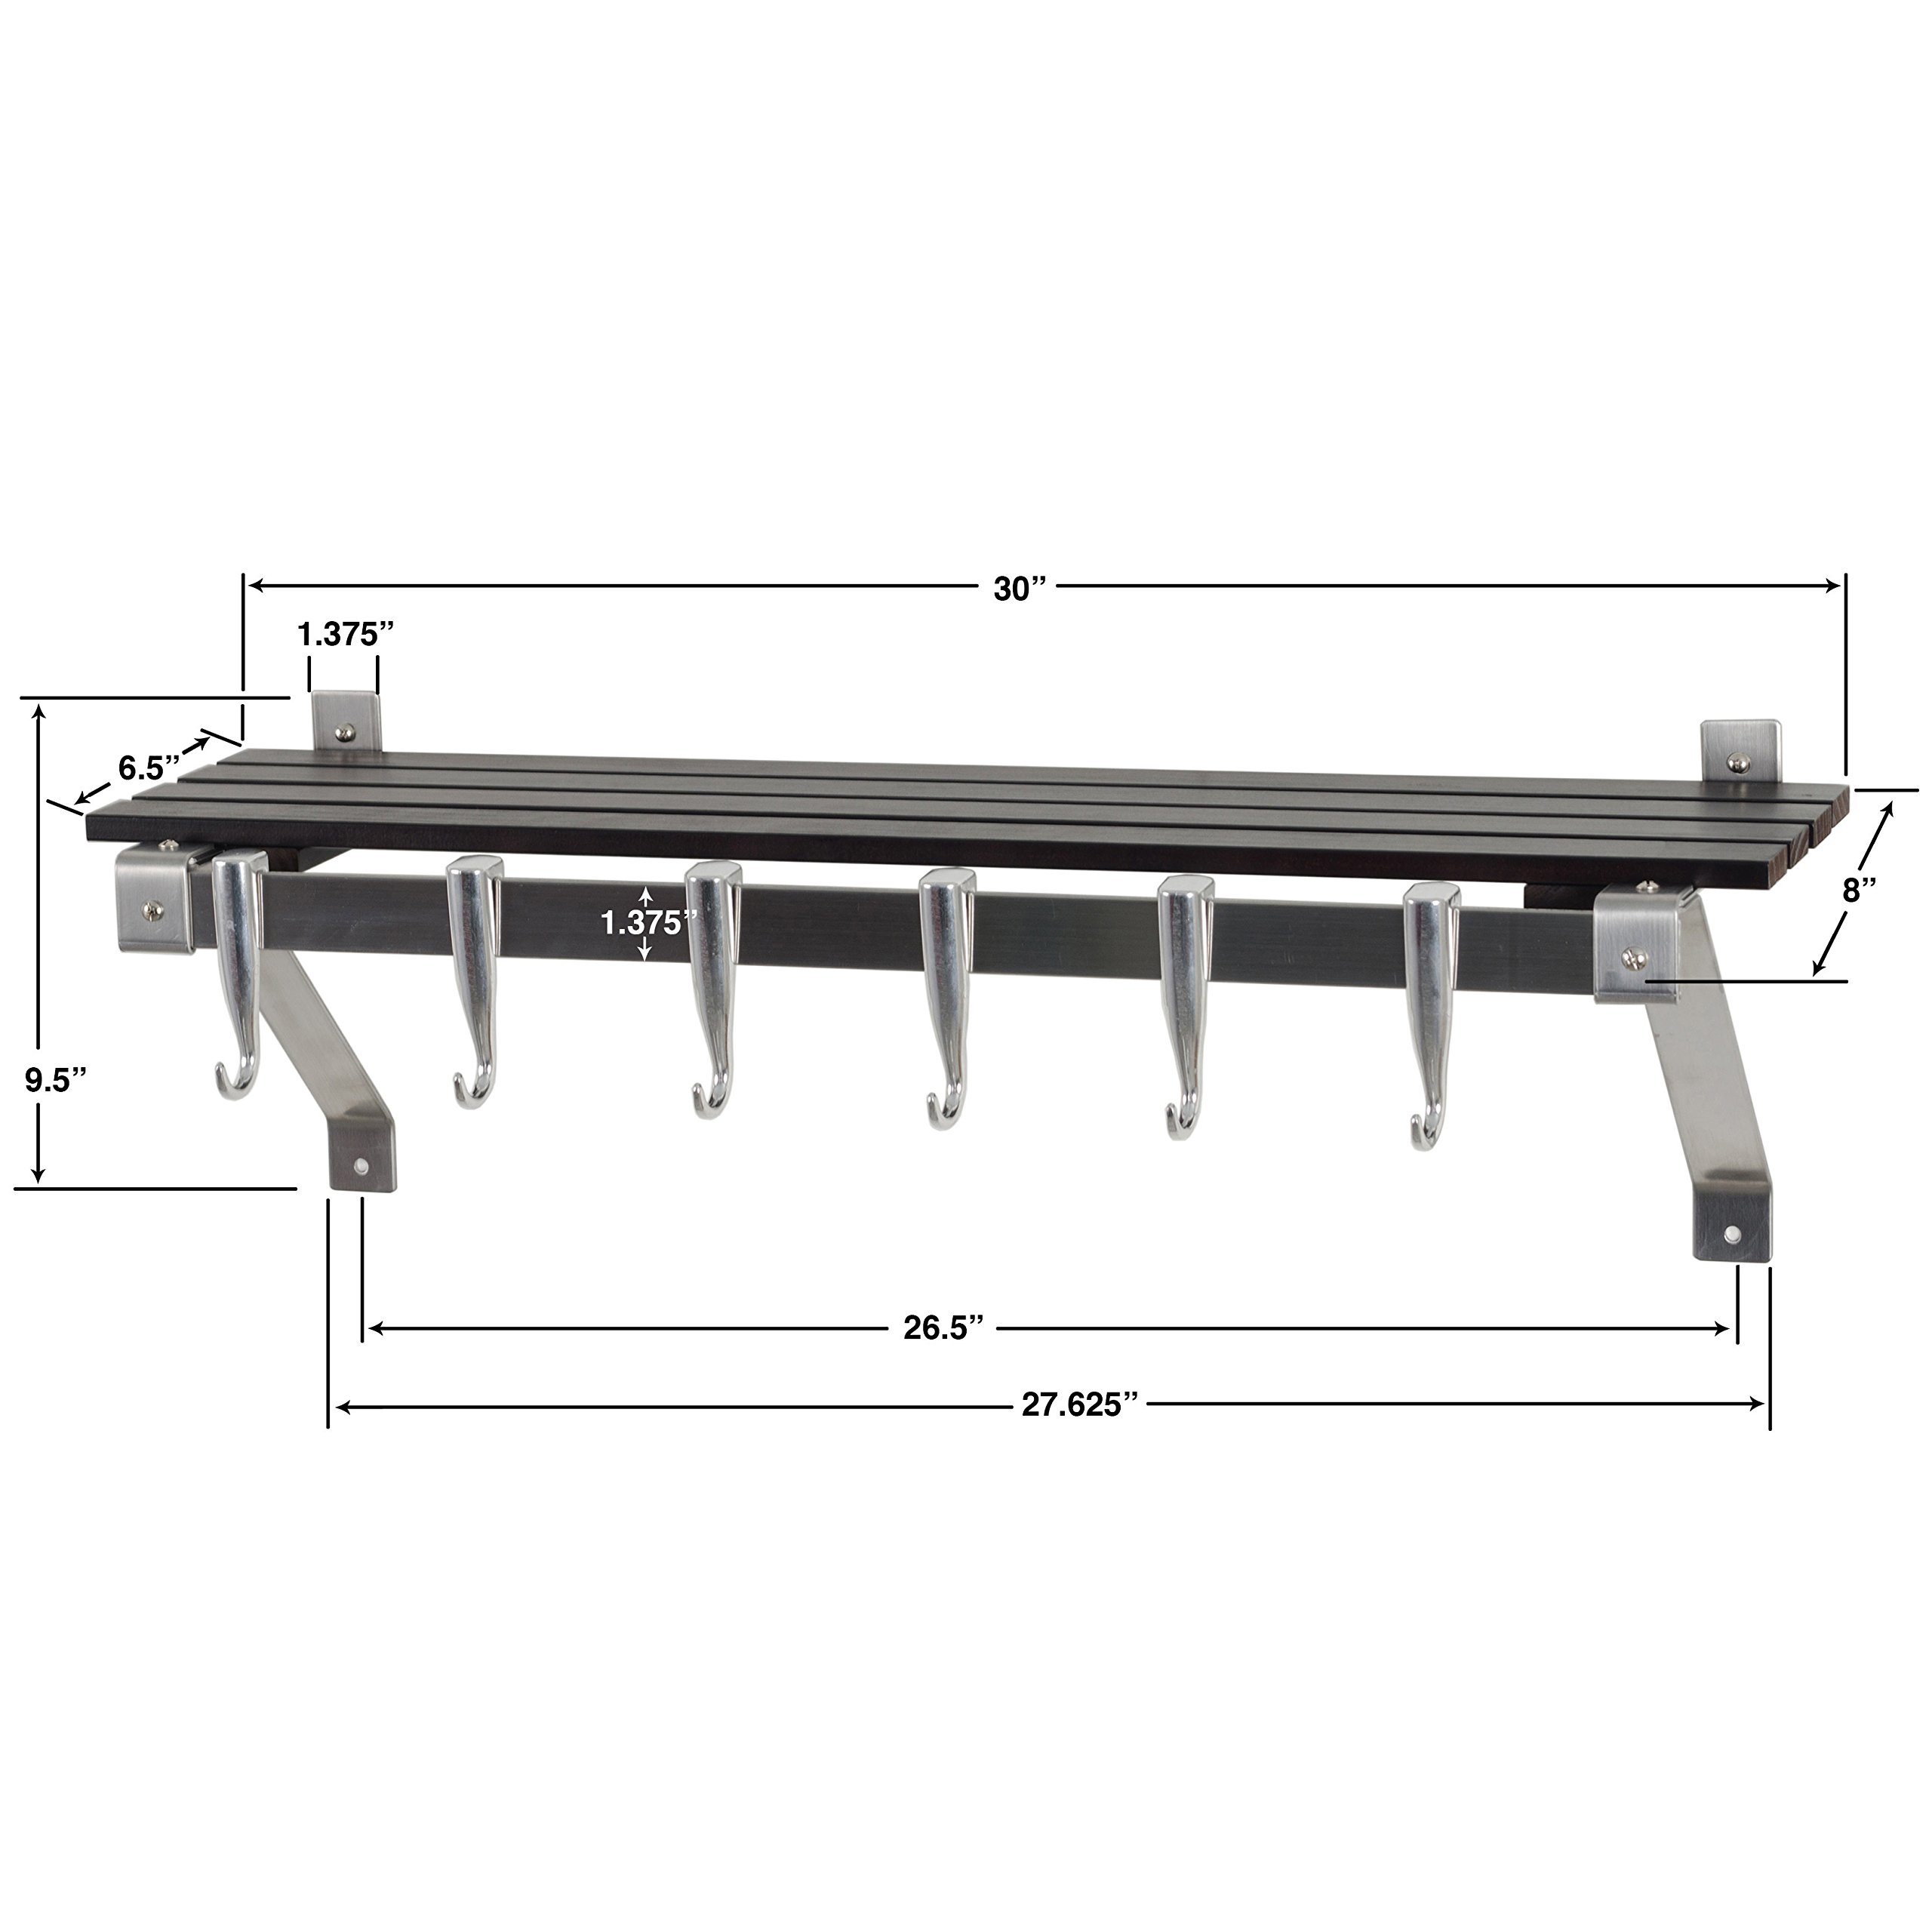 Concept Housewares Stainless Steel Espresso Finish Wall Rack by Concept Housewares